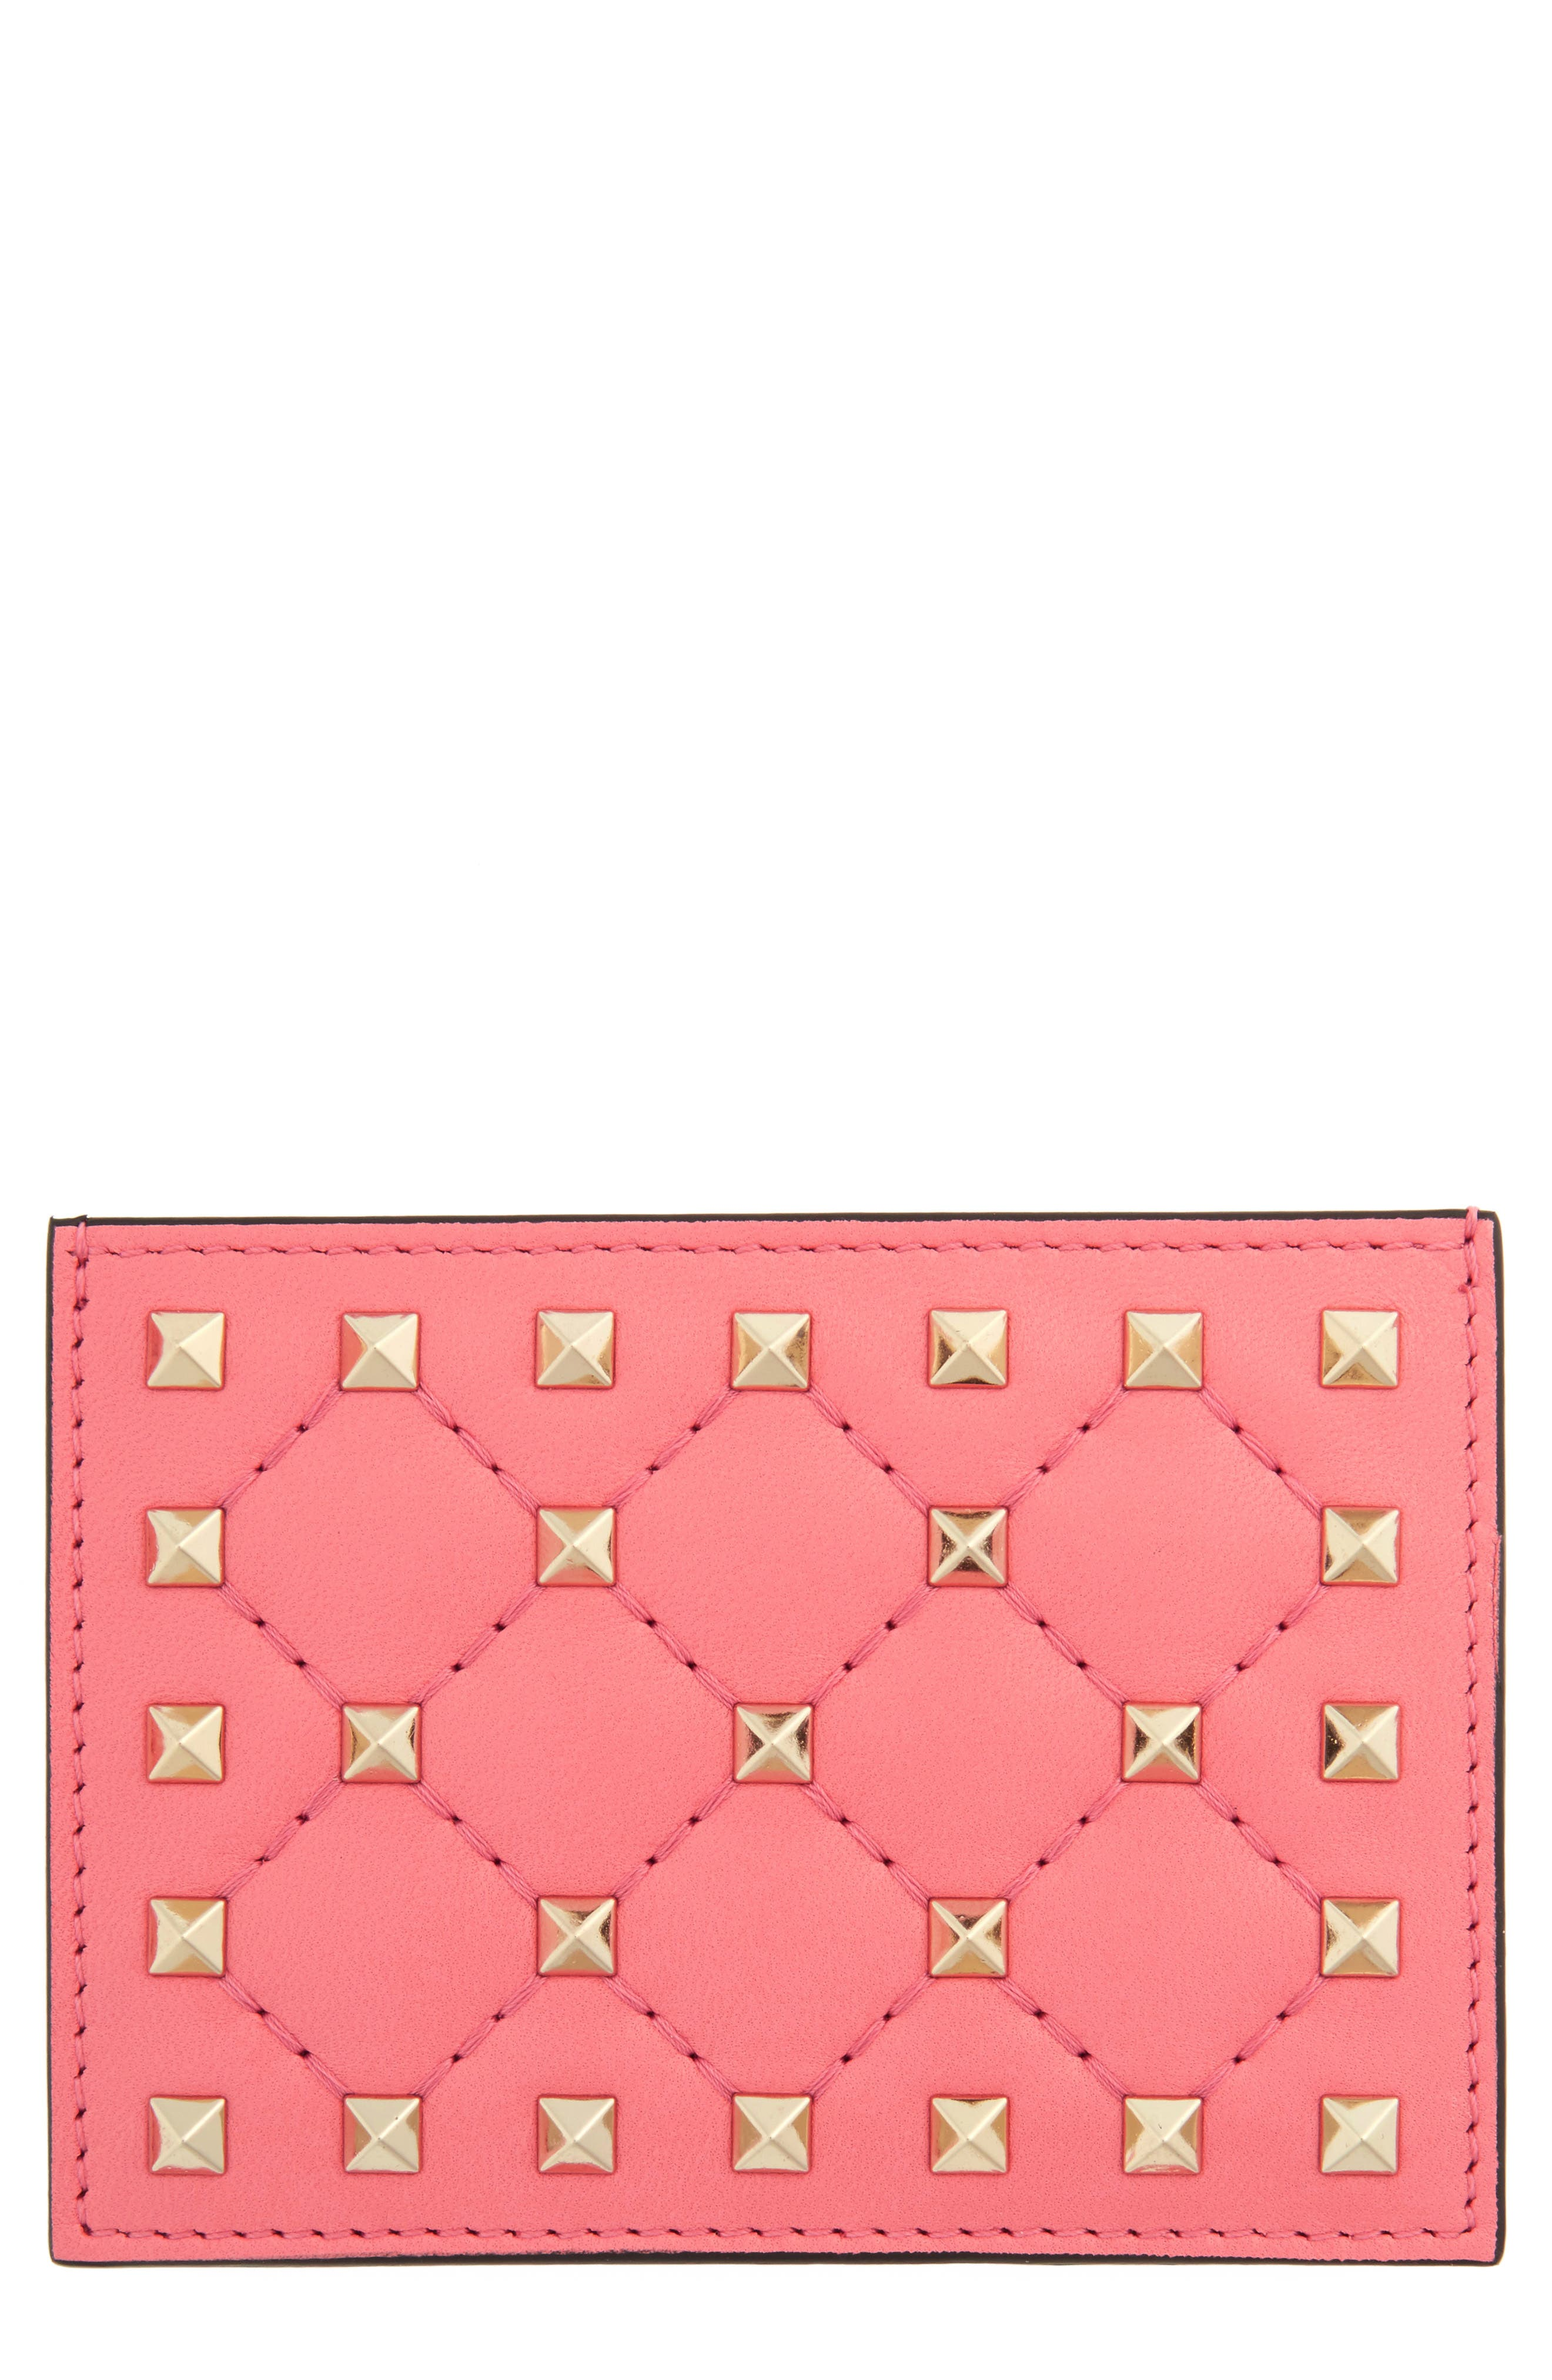 VALENTINO GARAVANI Rockstud Nappa Leather Card Case